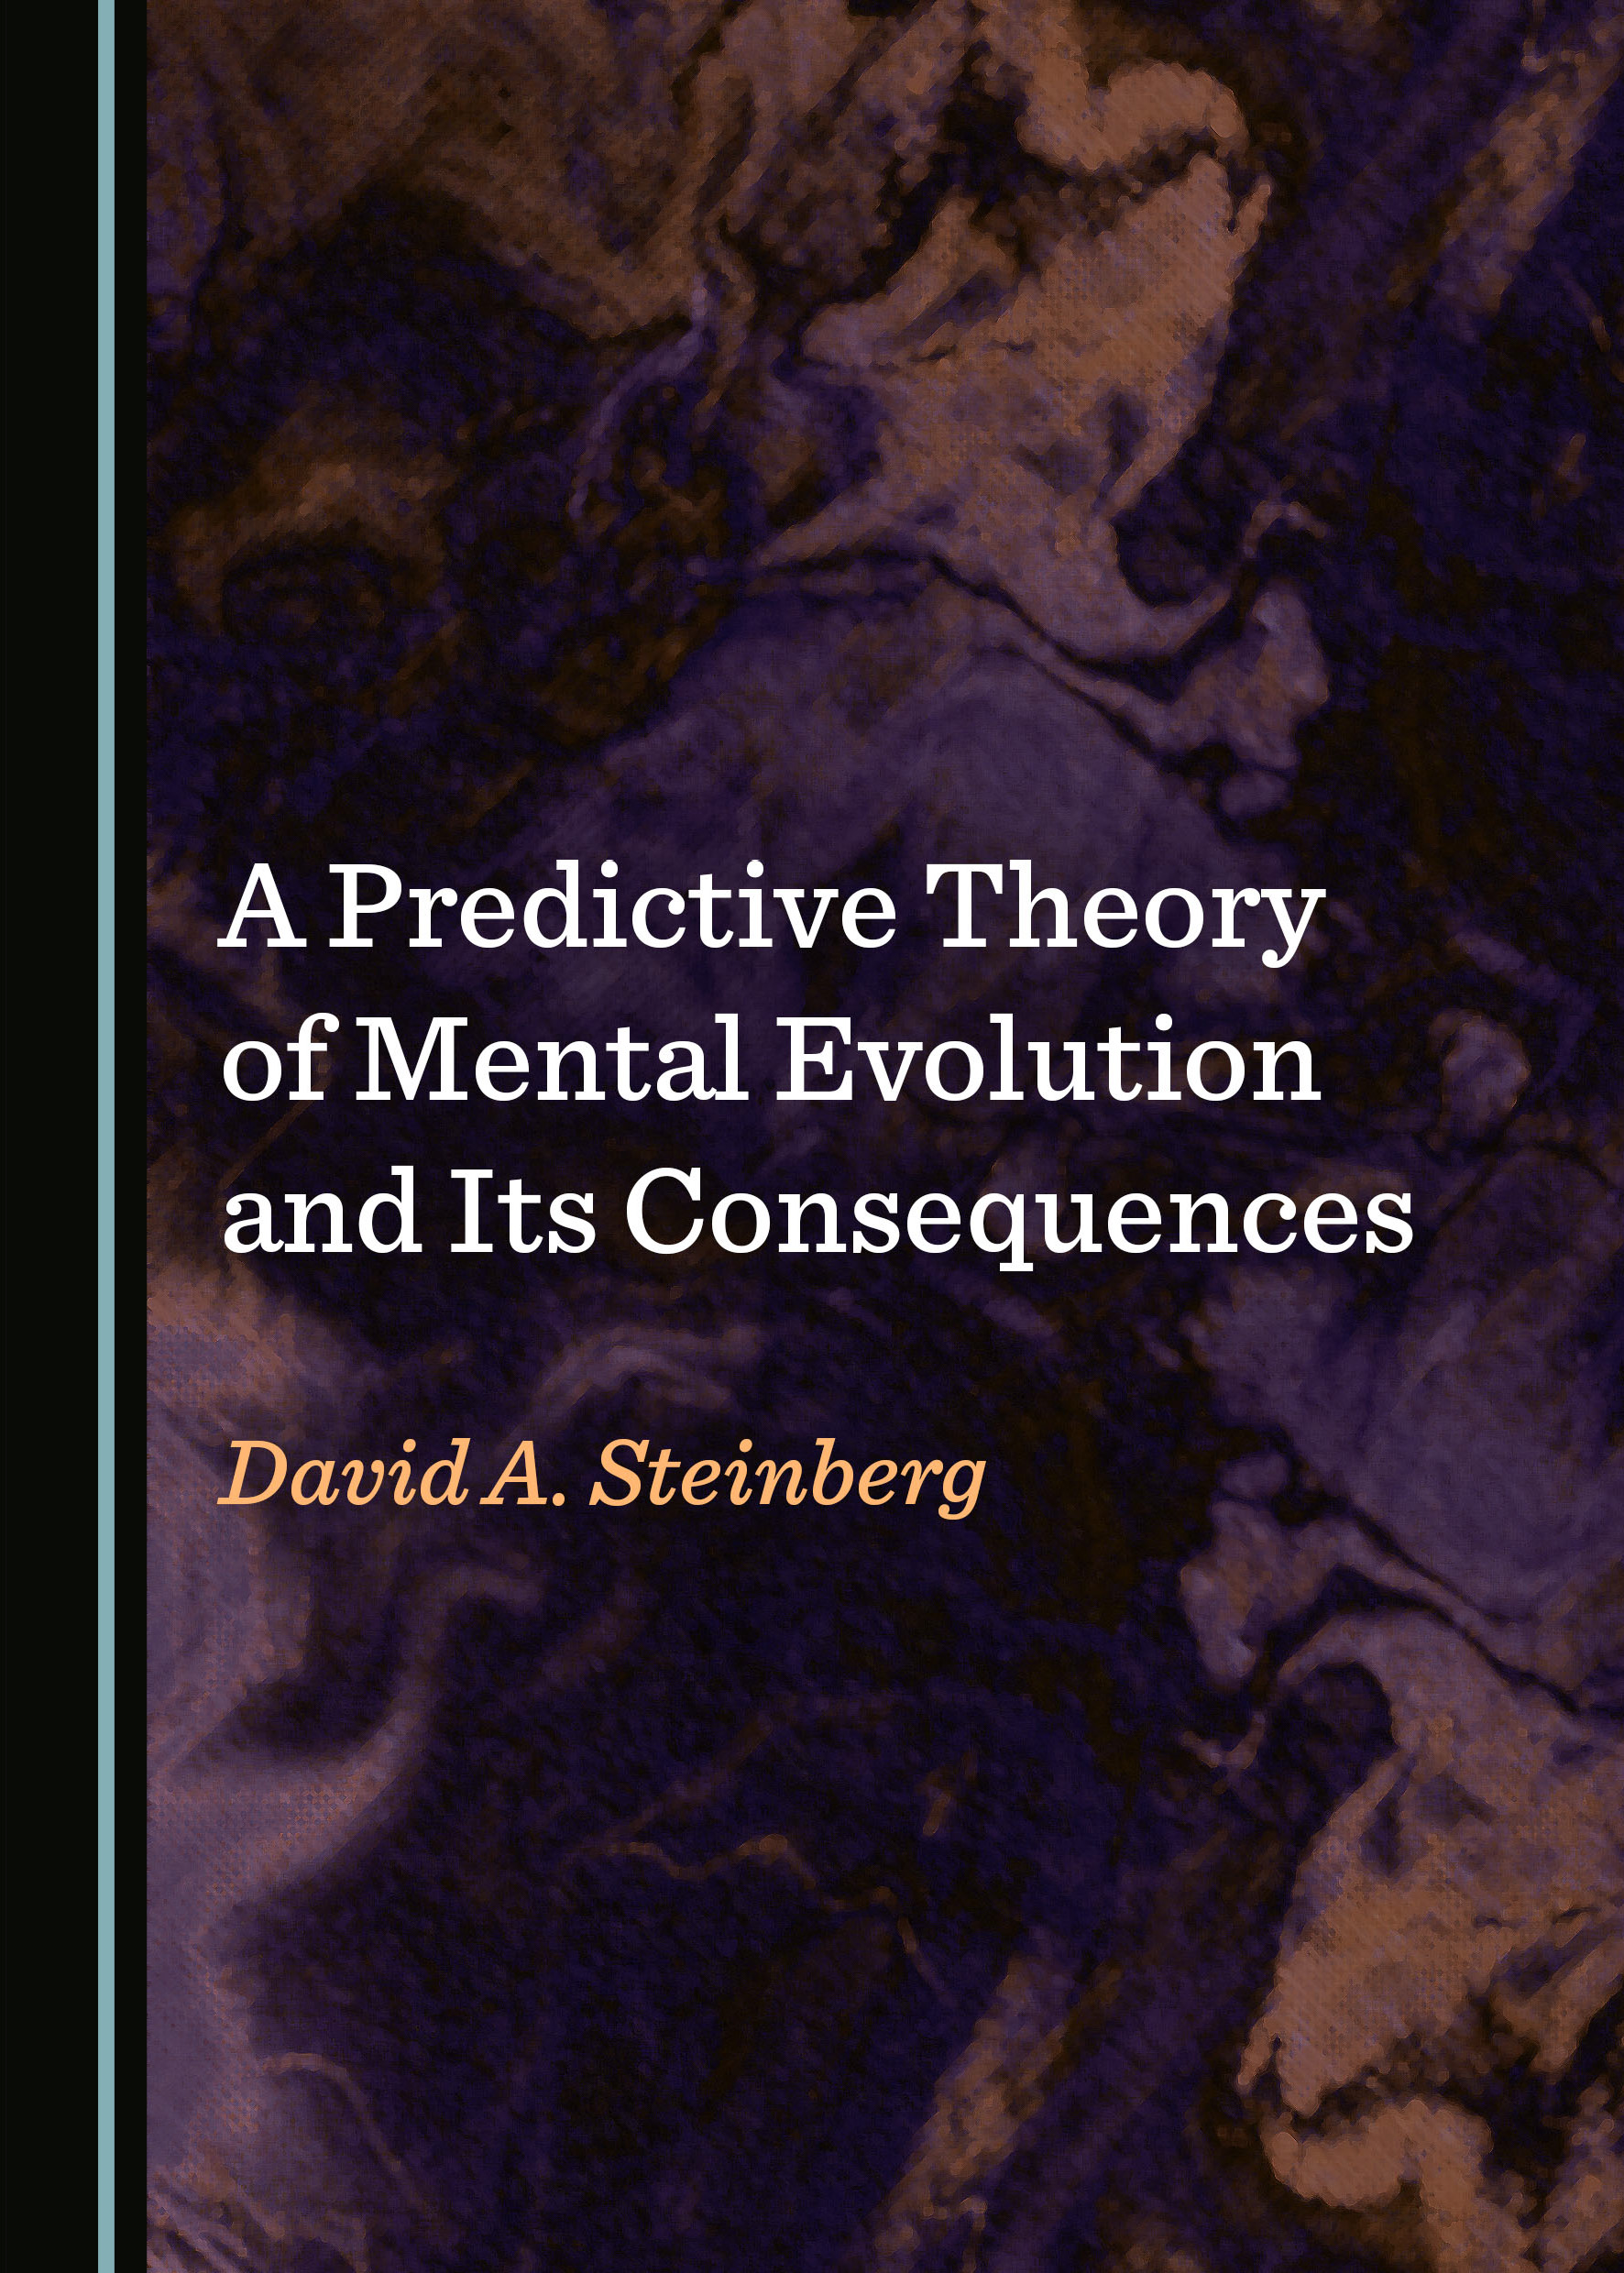 A Predictive Theory of Mental Evolution and Its Consequences